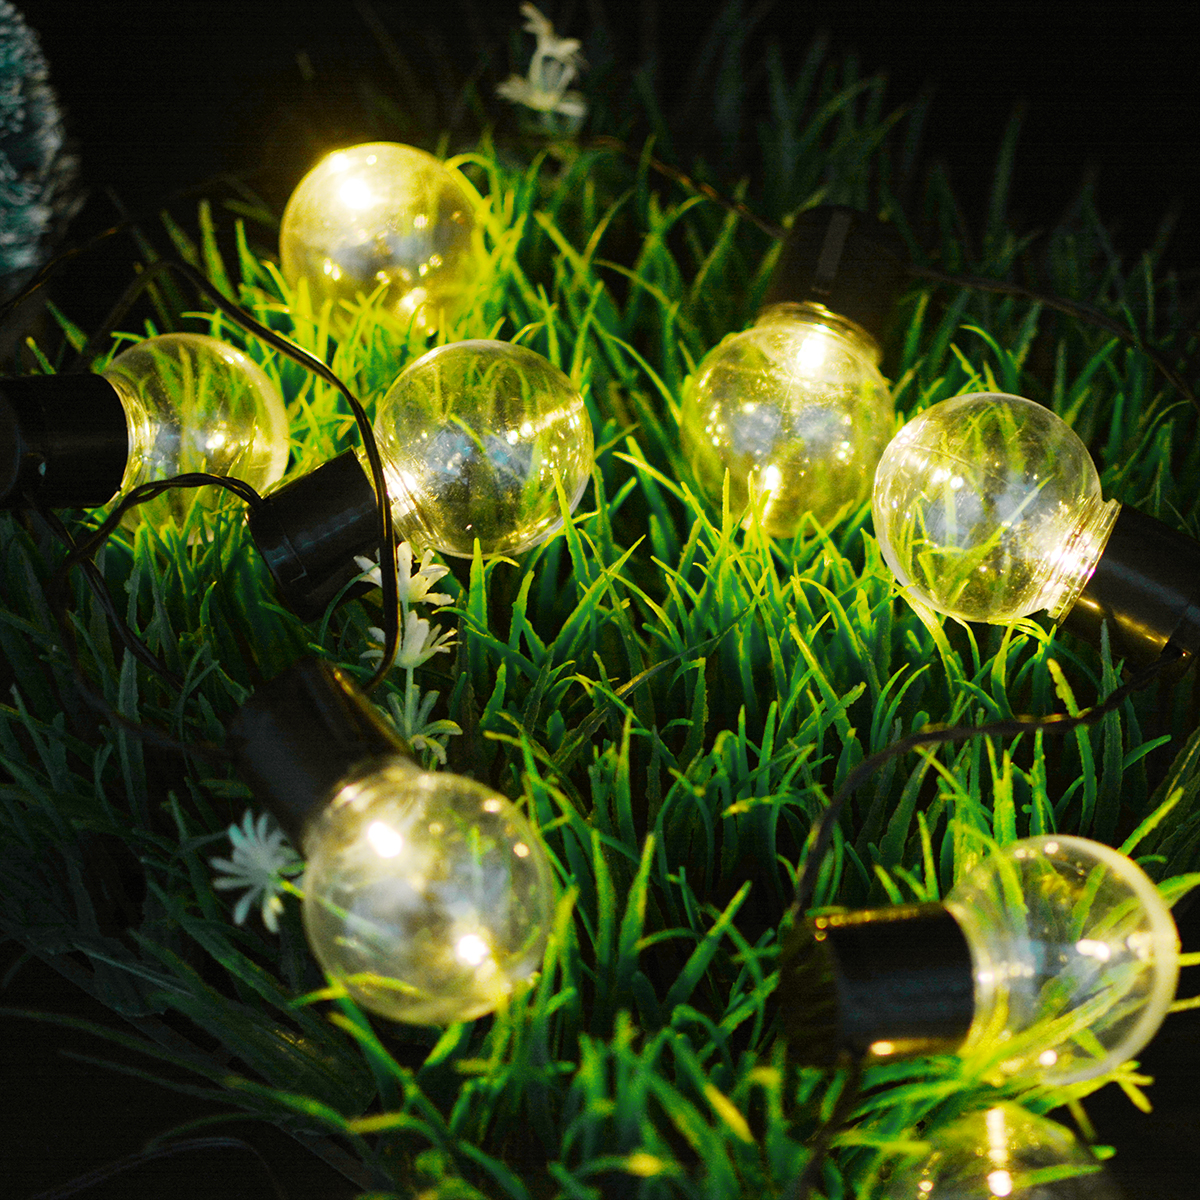 Garden Solar Light 10 Ball Led Bulb Solar Powered garden lamps Waterproof Warm White Solar String Lights For Outdoor Decoration